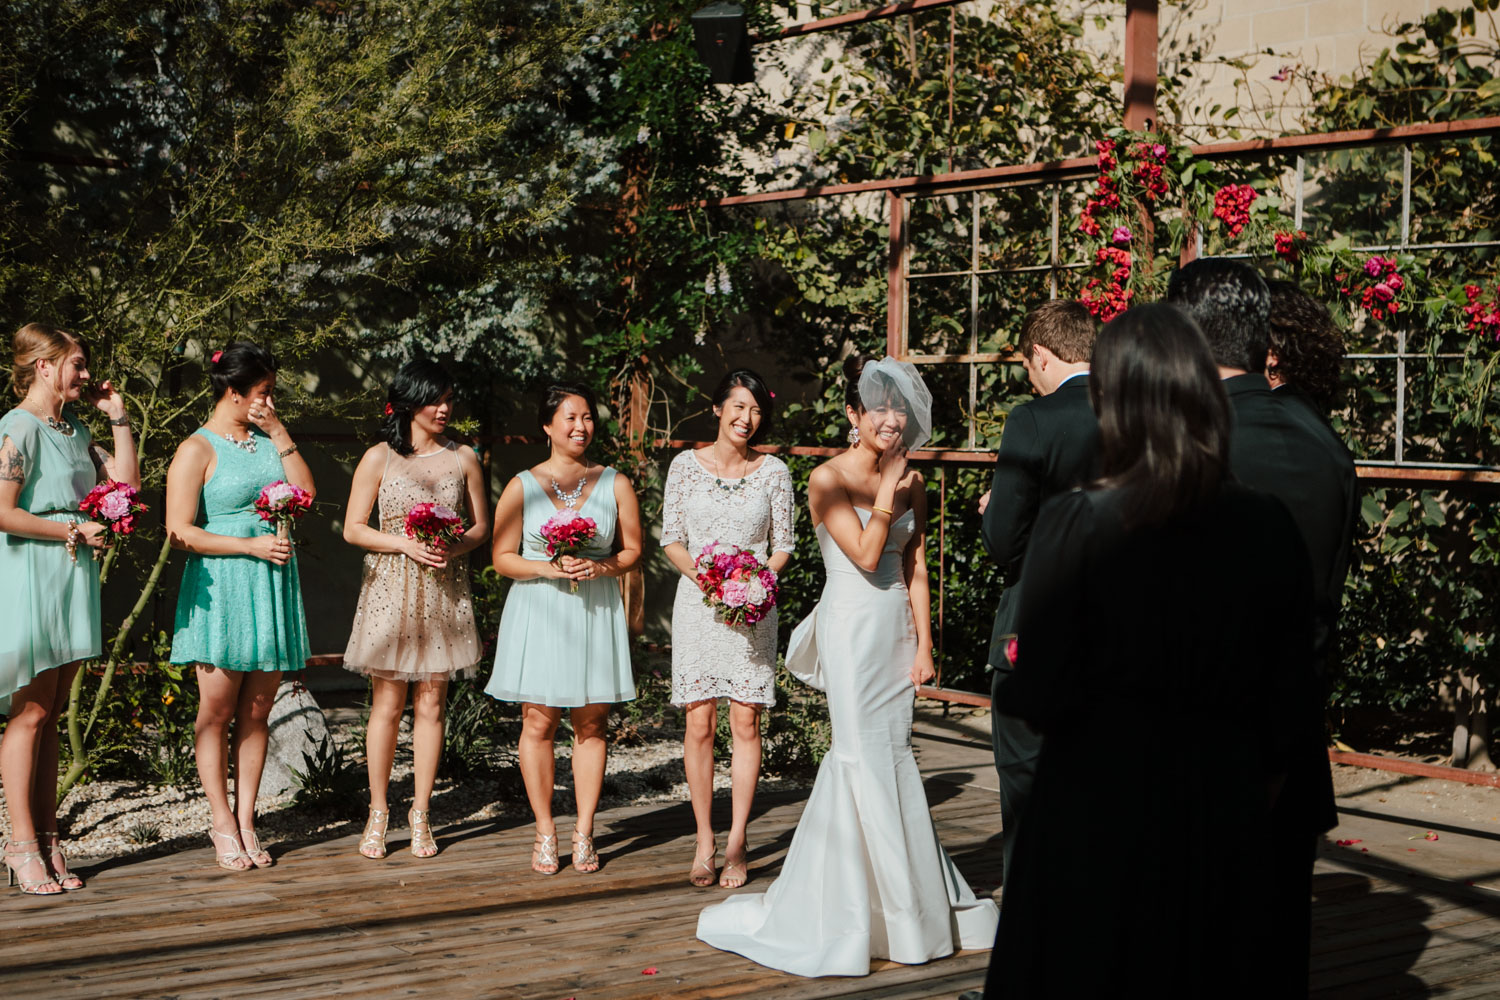 Los Angeles Wedding Photographer, The Elysian  - The Gathering Season x weareleoandkat 054.JPG